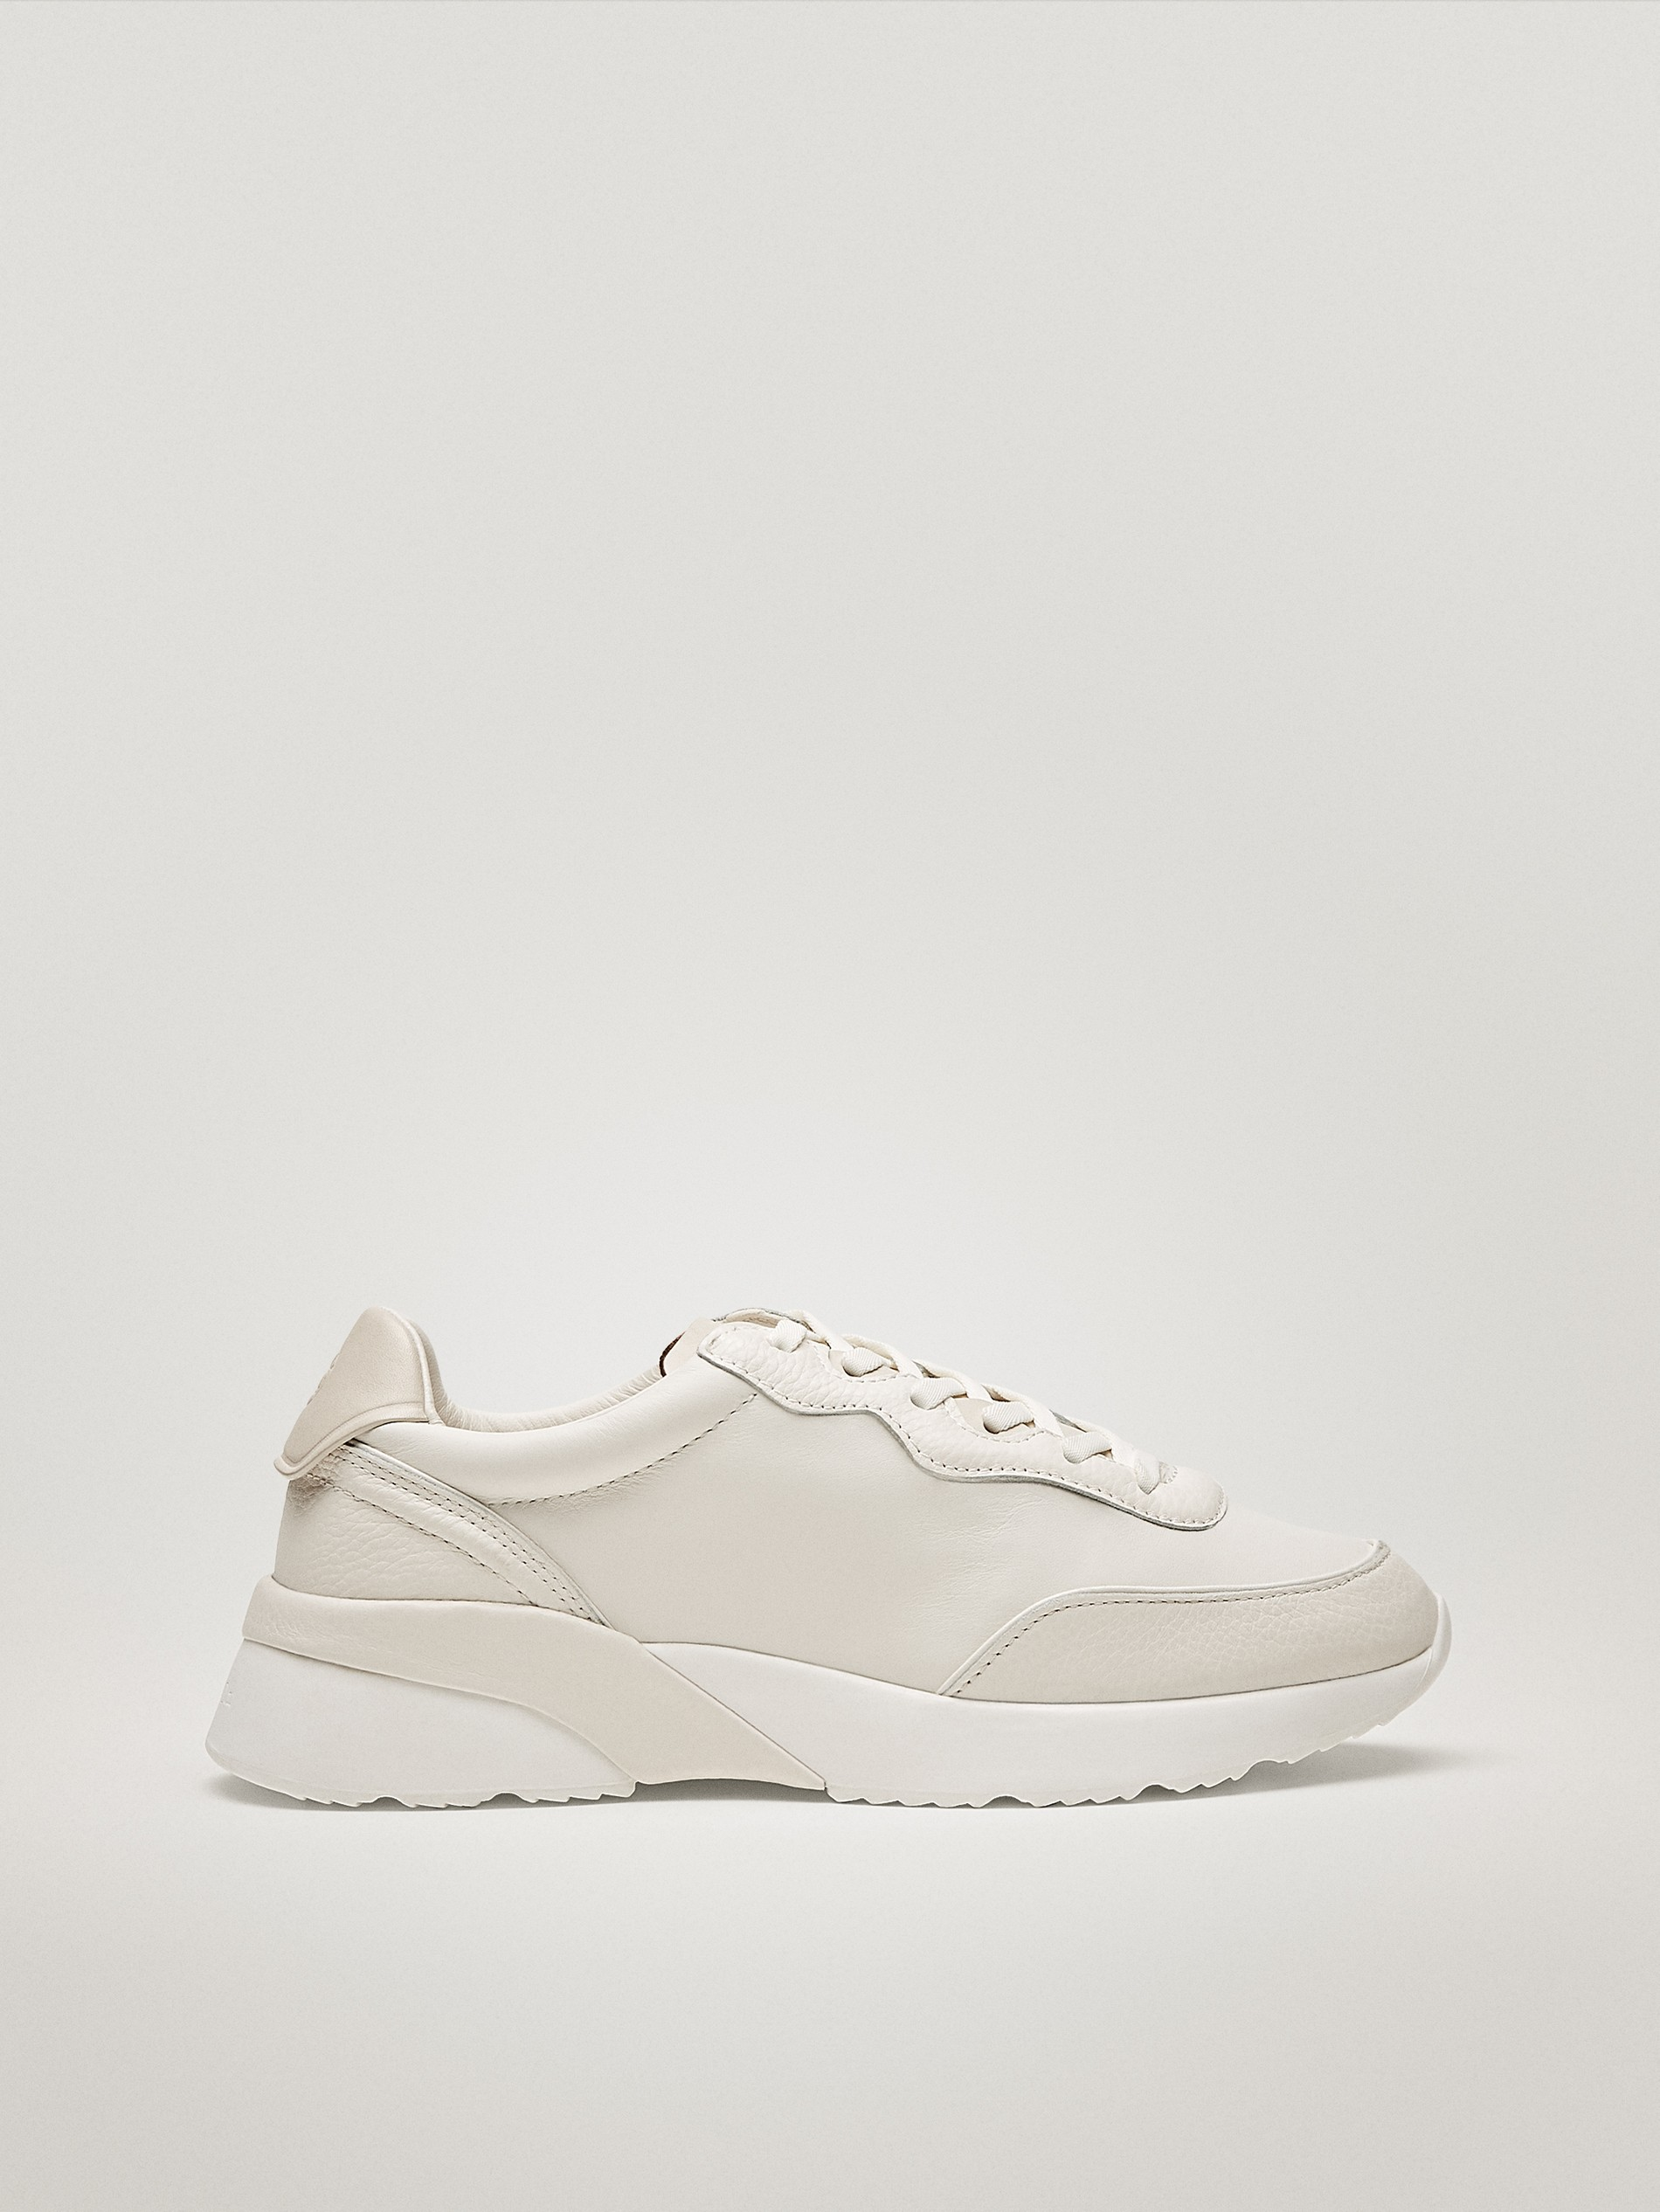 White trainers with leather piece sole